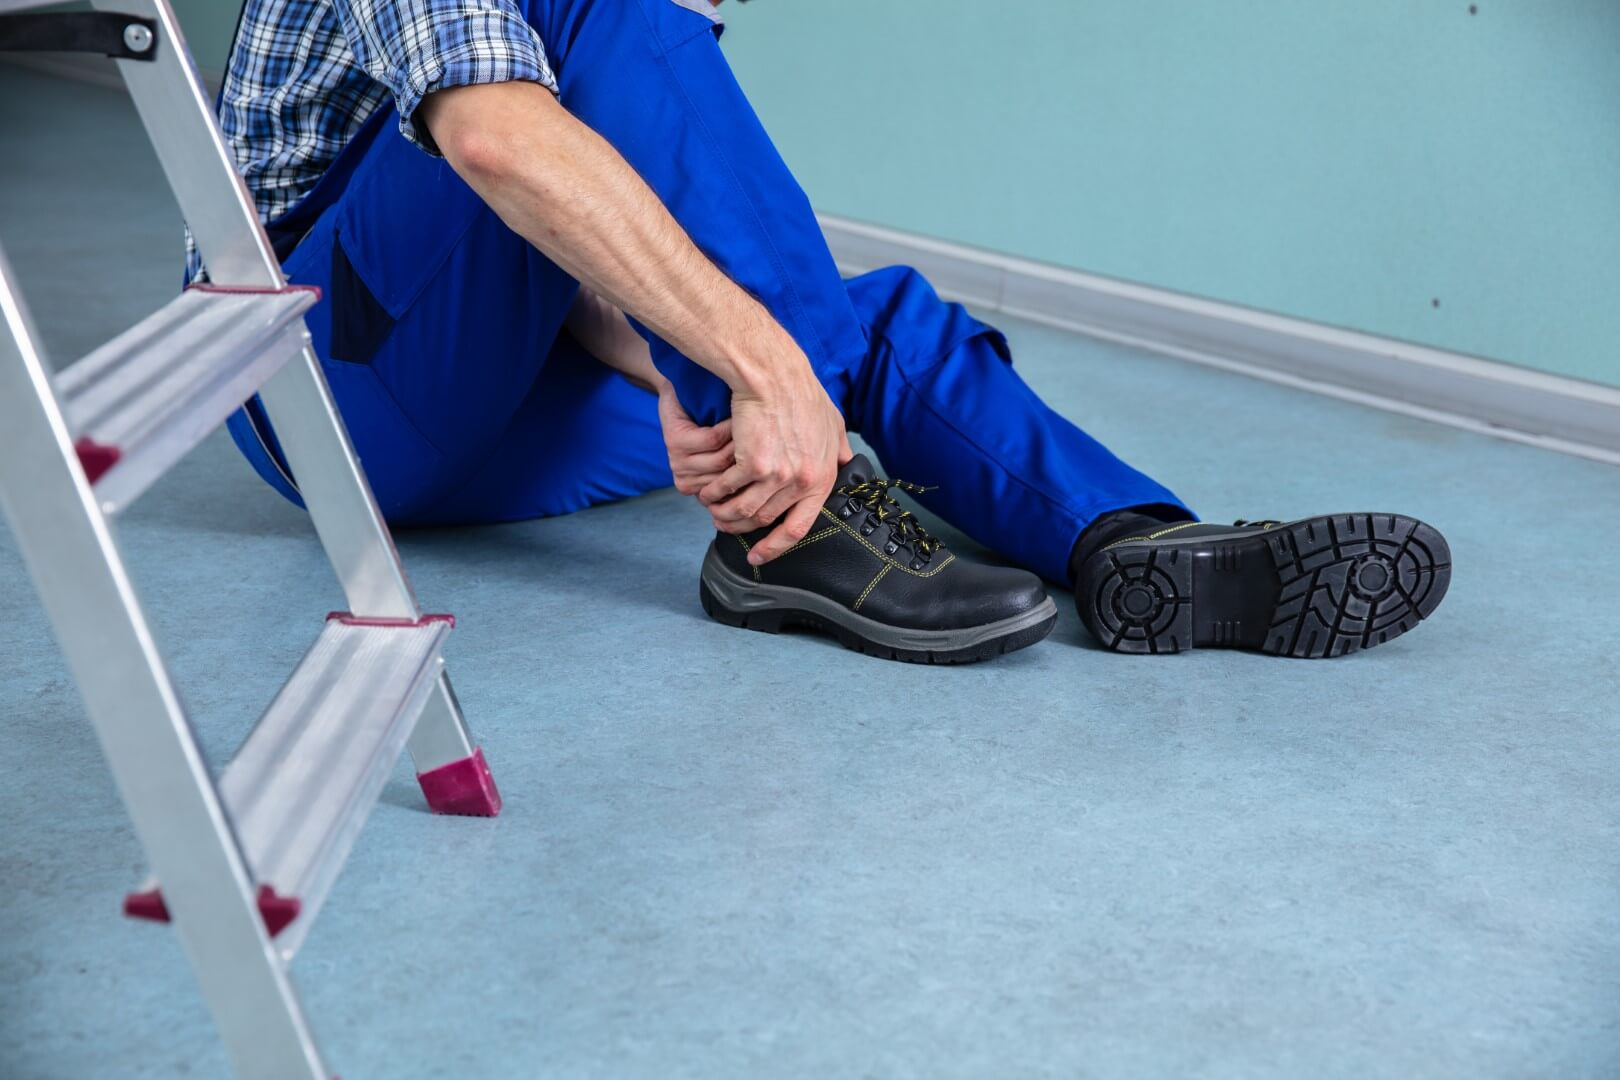 handman clutching ankle after falling from ladder